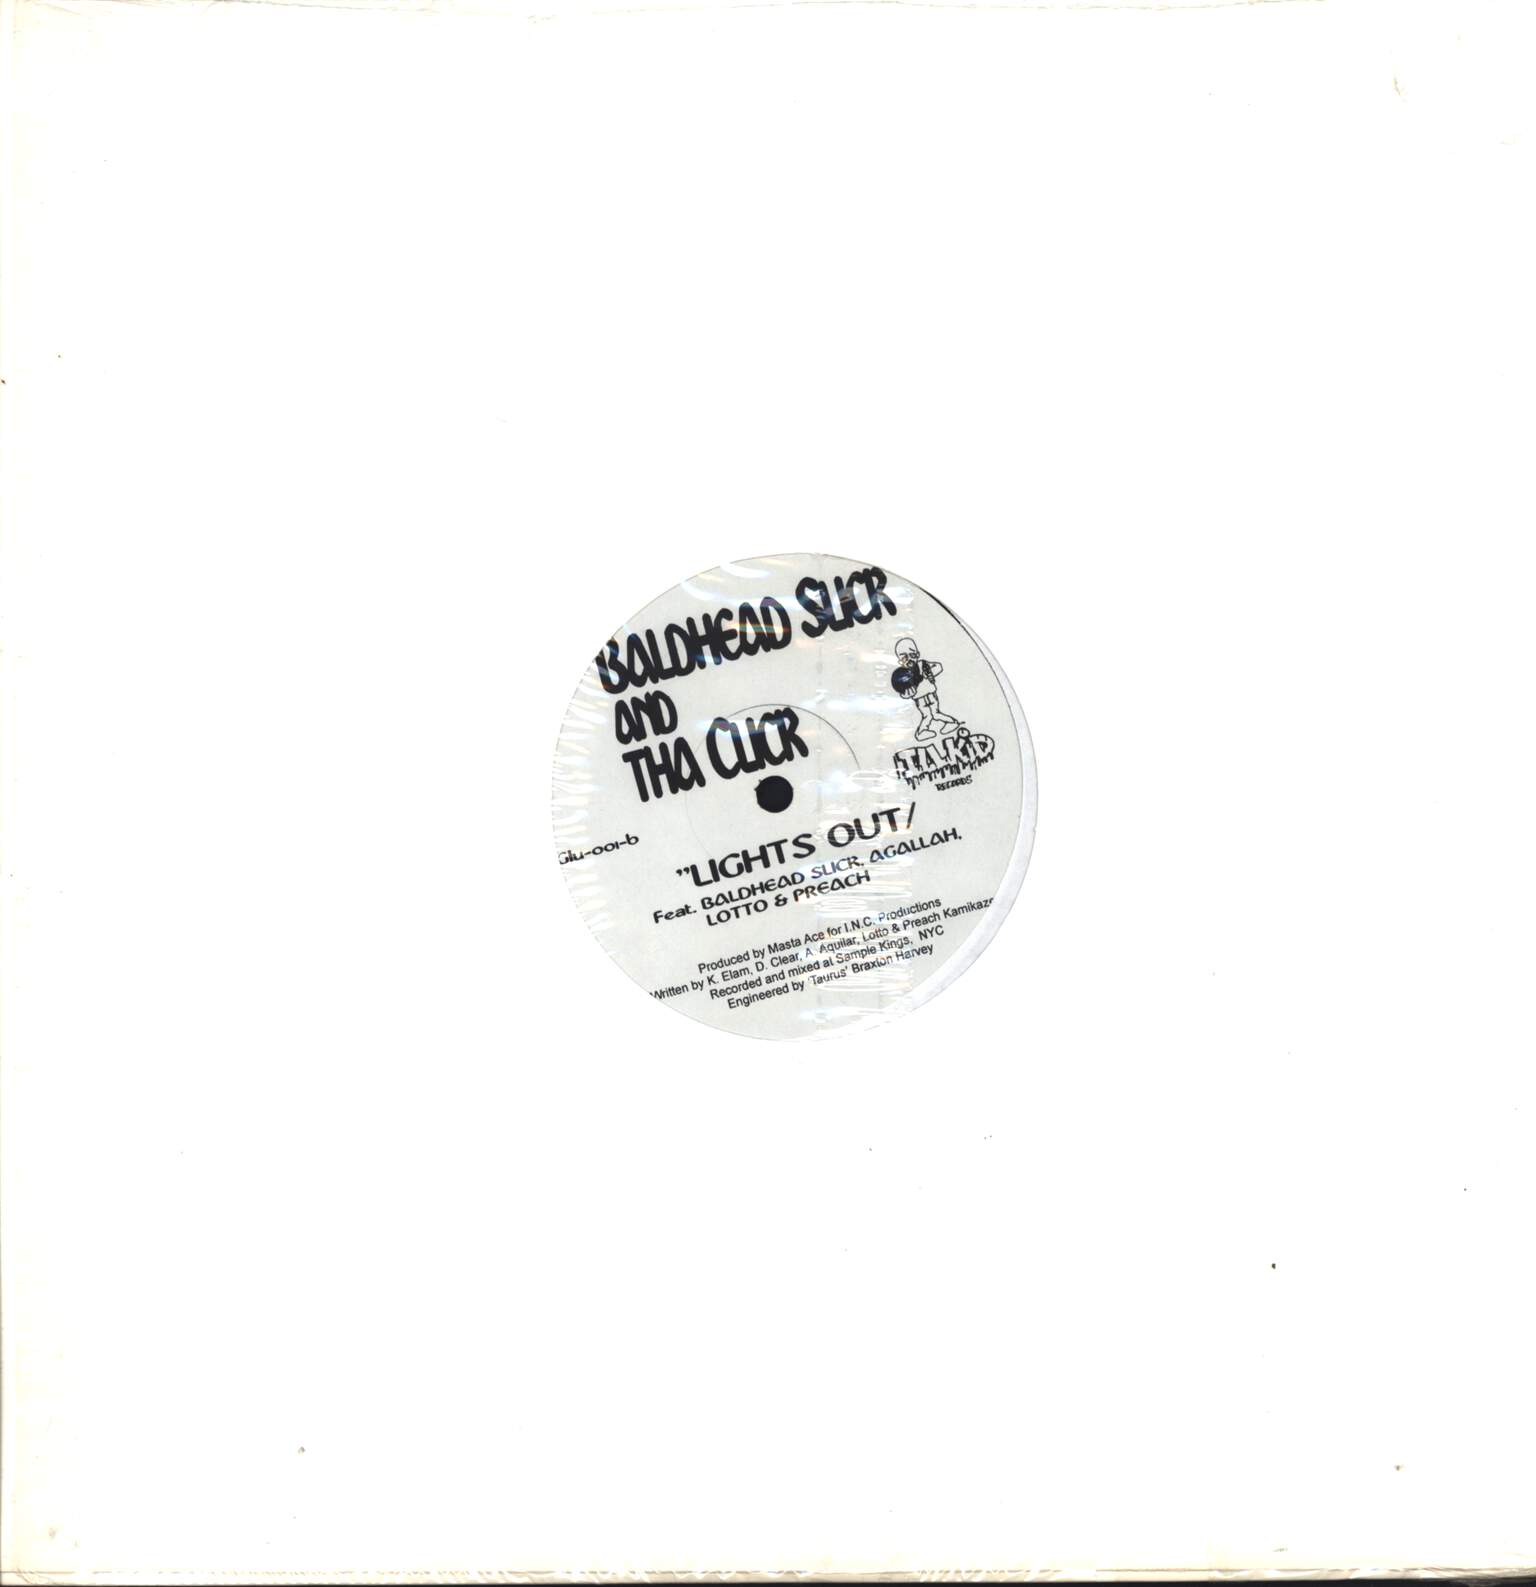 "Baldhead Slick & Da Click: Damage You Kidz / Lights Out, 12"" Maxi Single (Vinyl)"